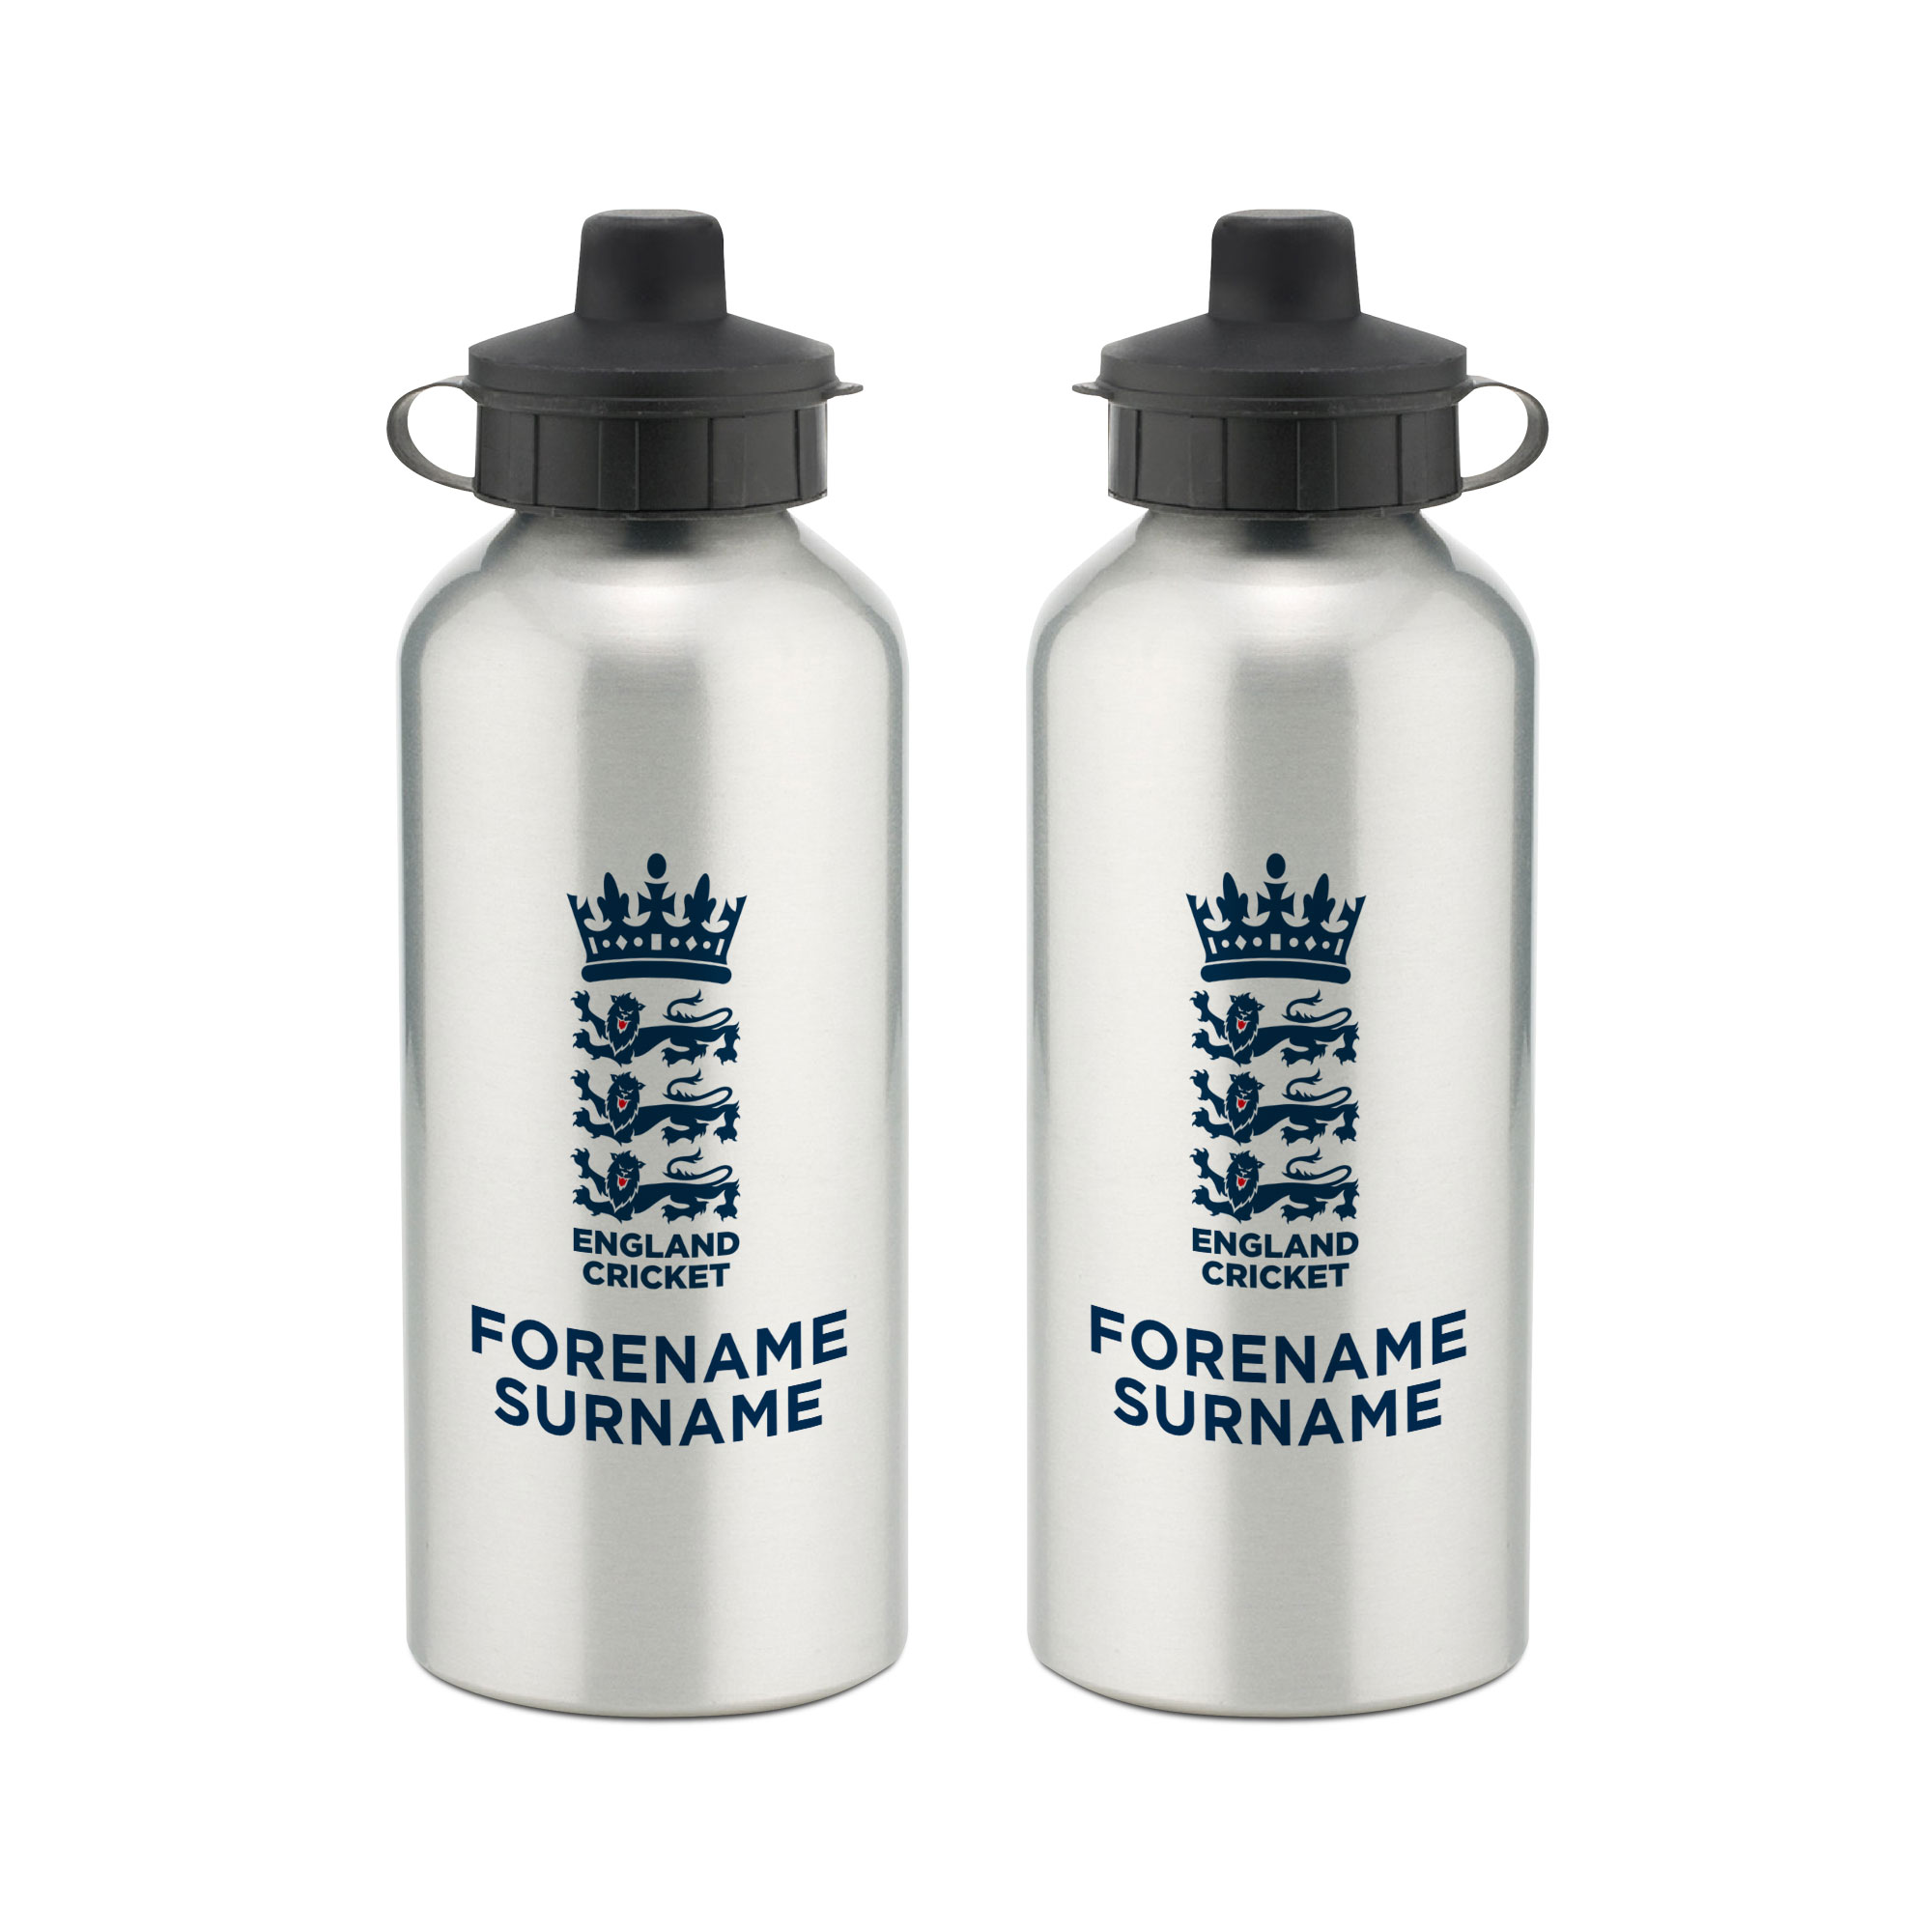 England Cricket Bold Crest Water Bottle